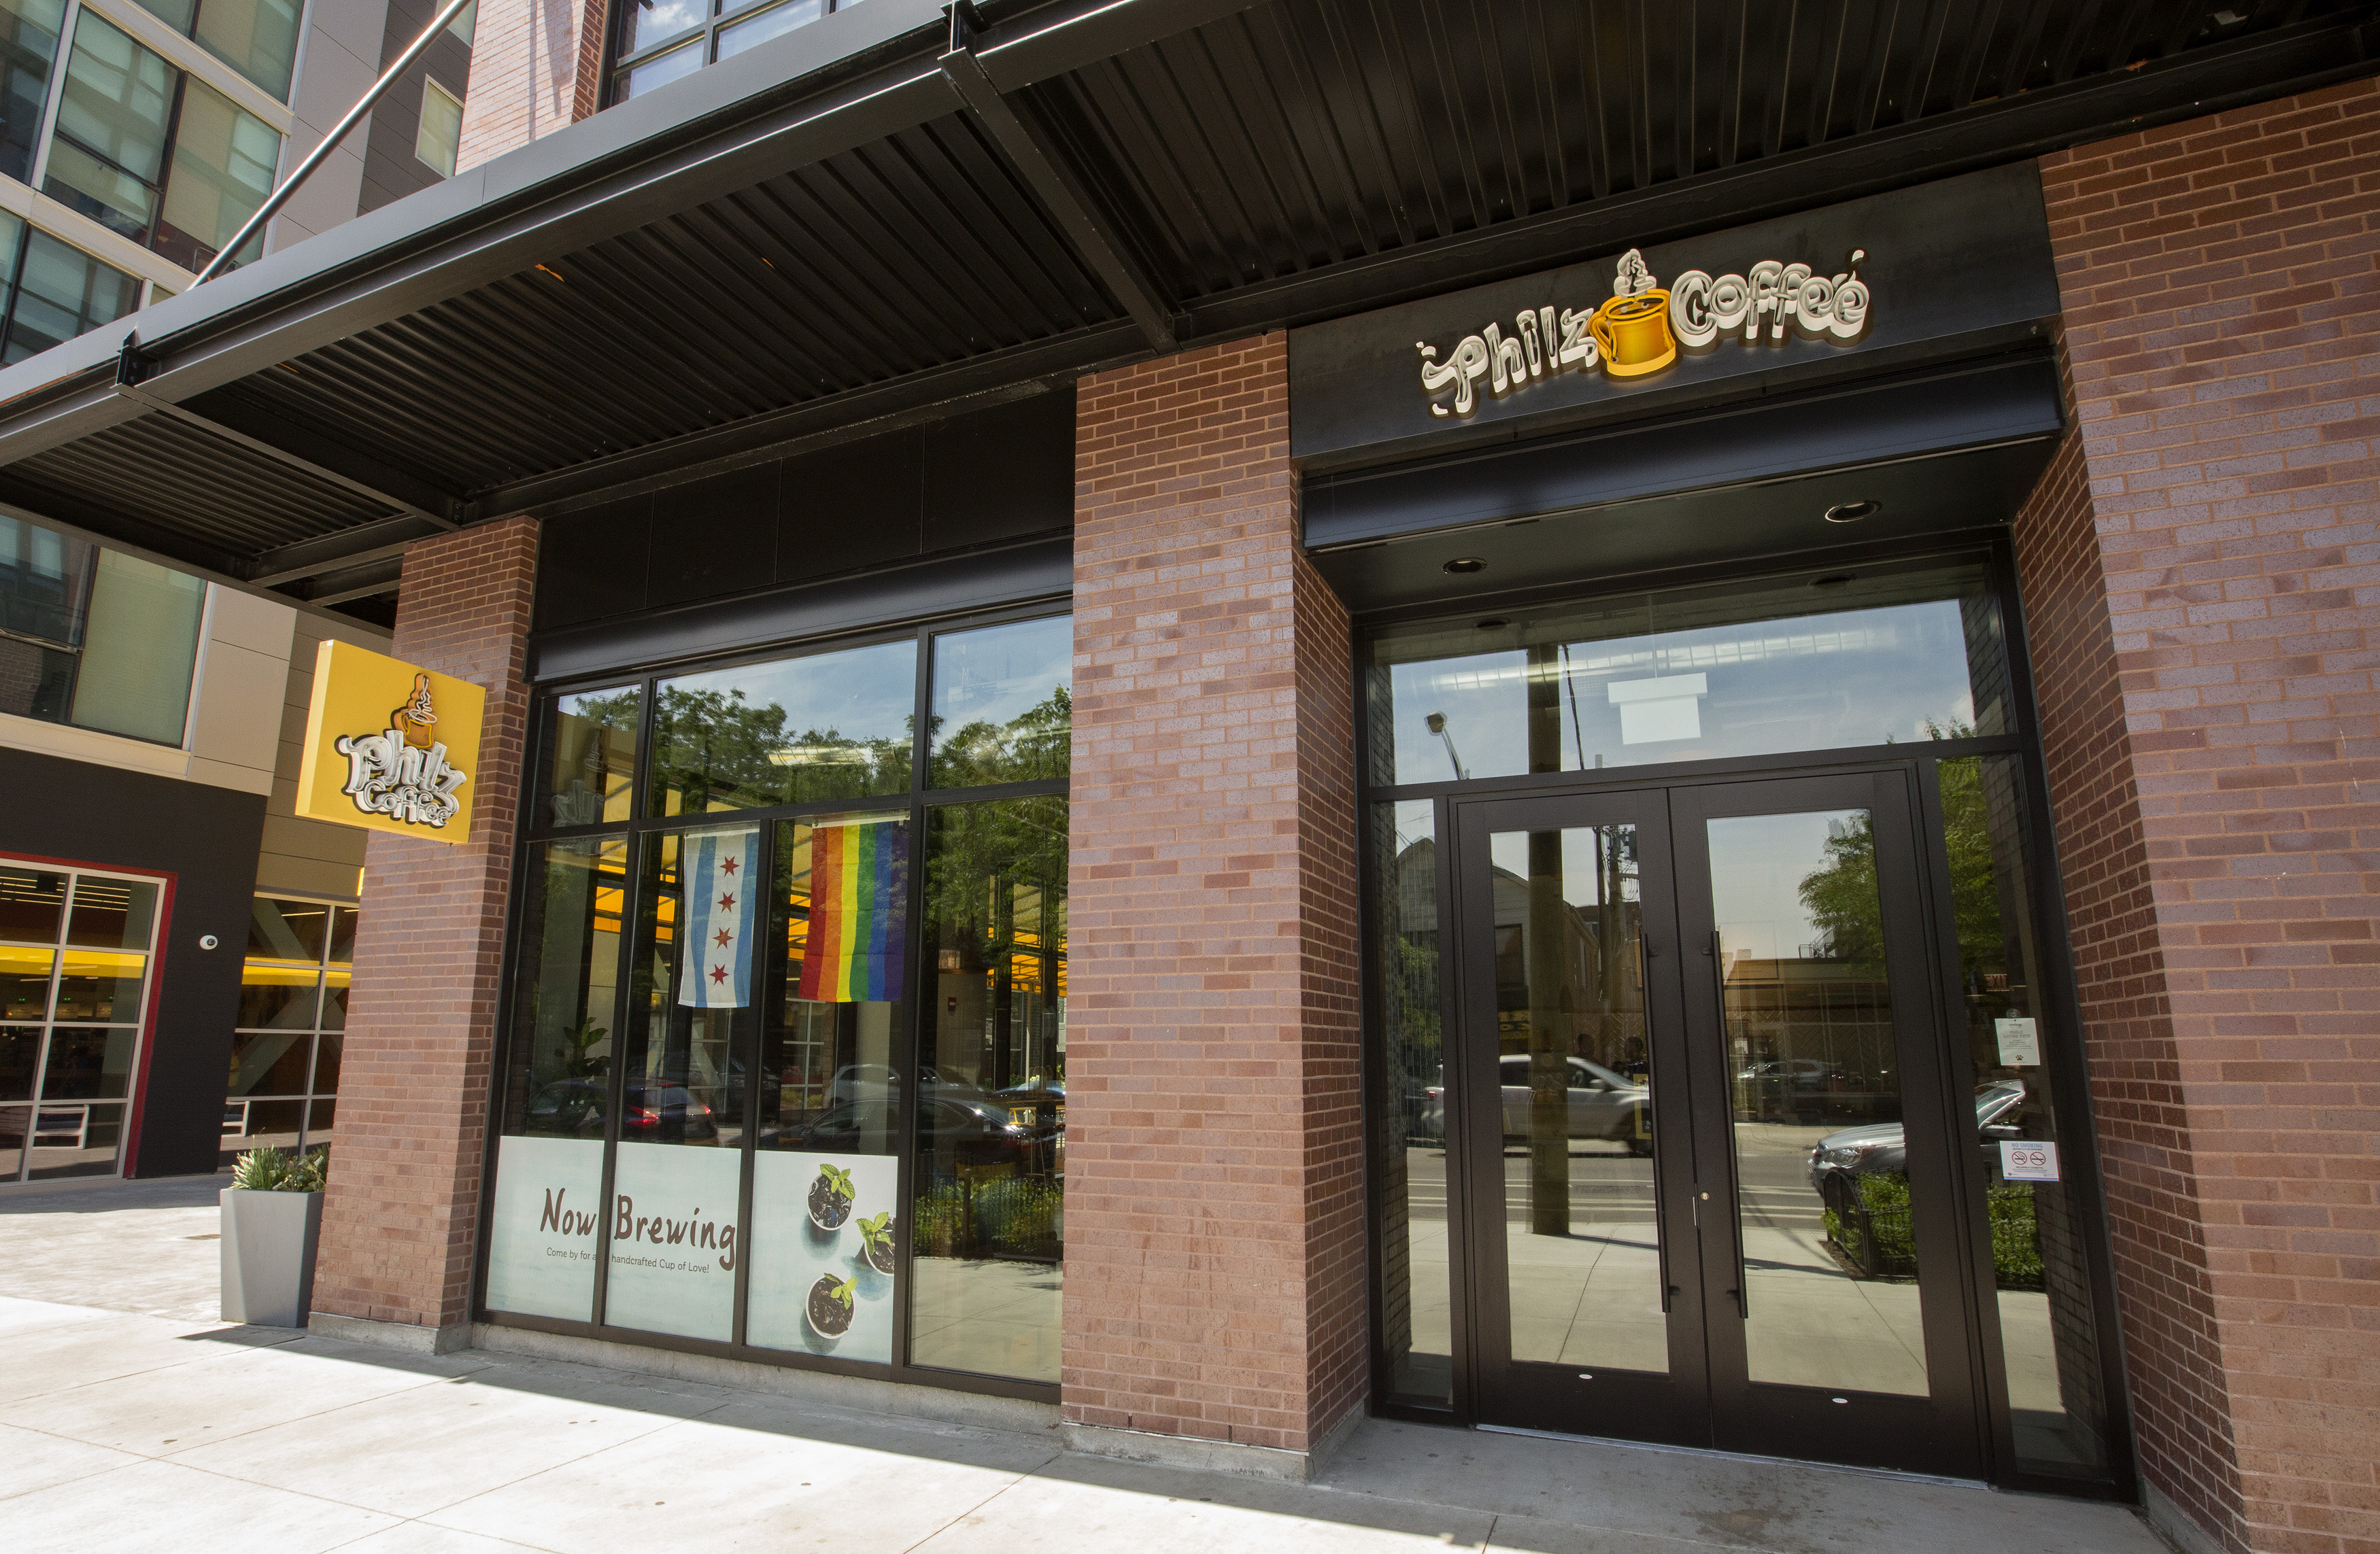 San Francisco Treat Philz Coffee Sets Opening Date for Second Chicago Location